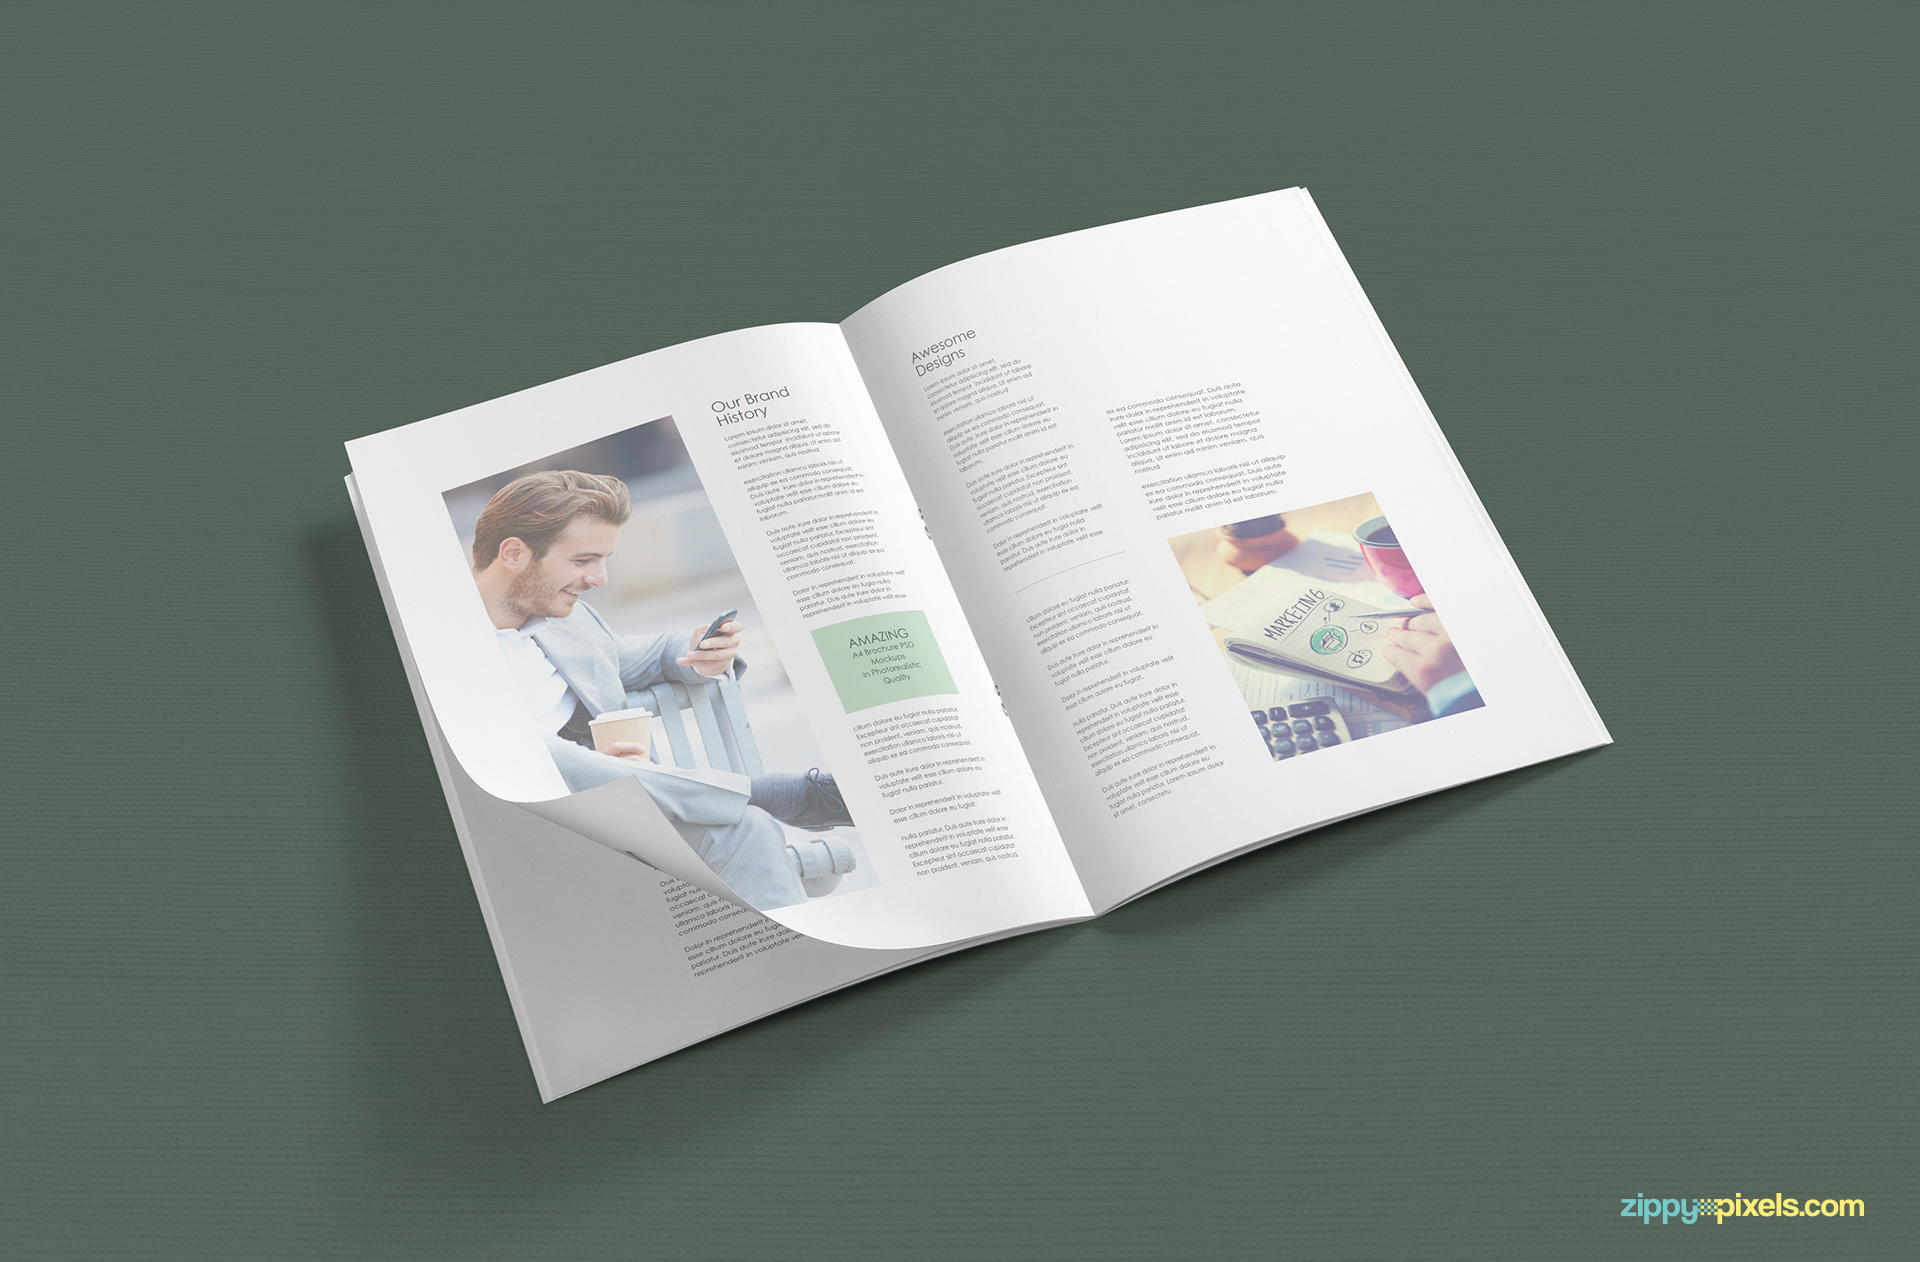 a4-open-view-of-a4-brochure-mockup